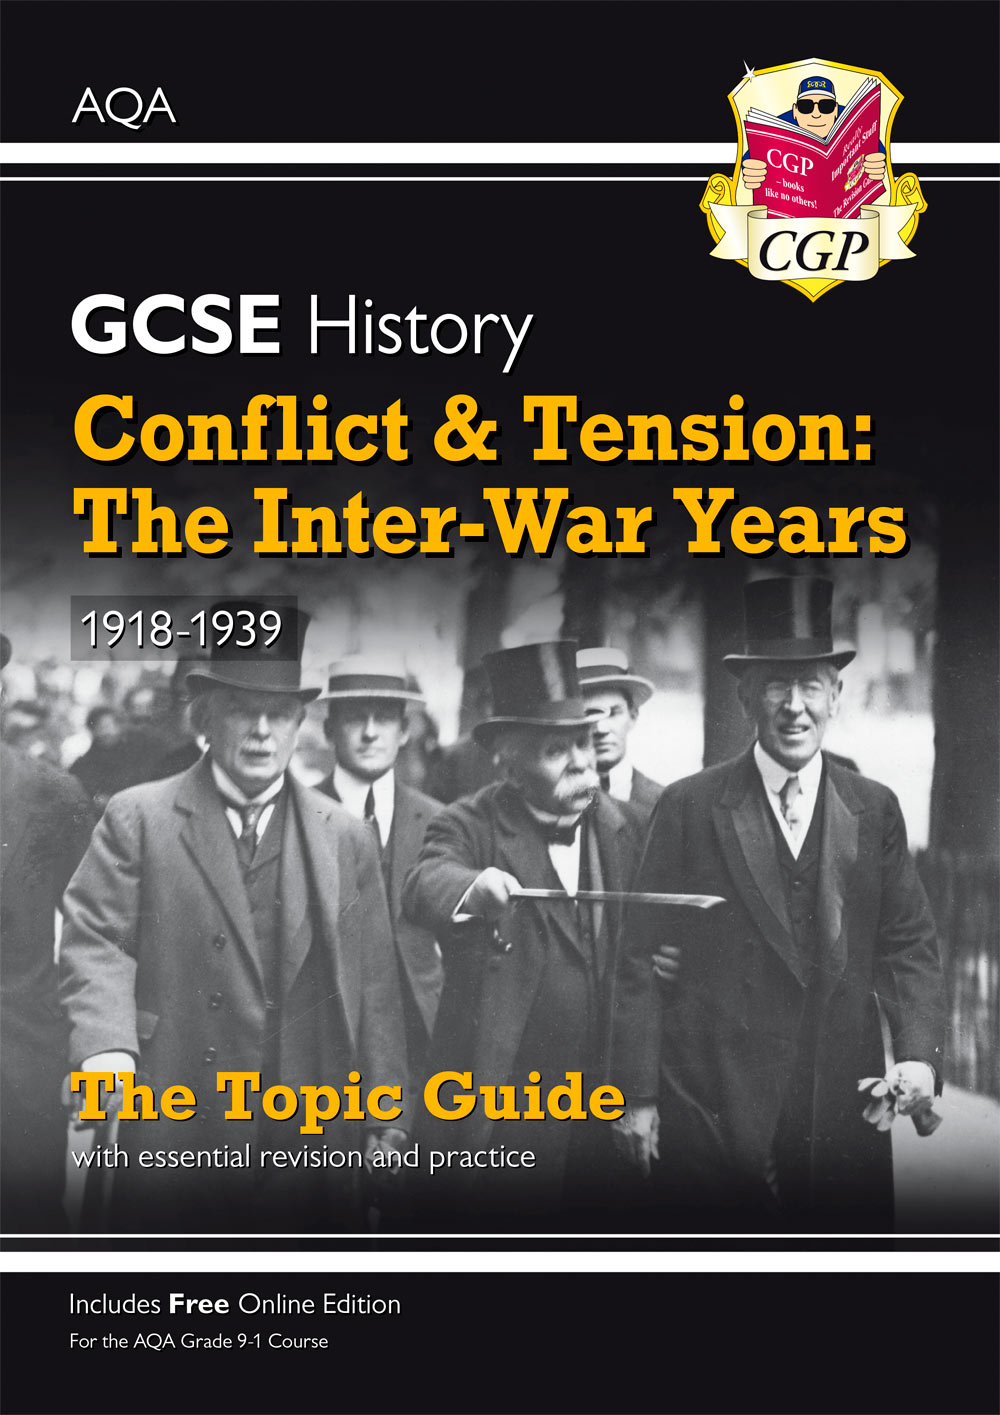 HACTO41 - New Grade 9-1 GCSE History AQA Topic Guide - Conflict and Tension: The Inter-War Years, 19